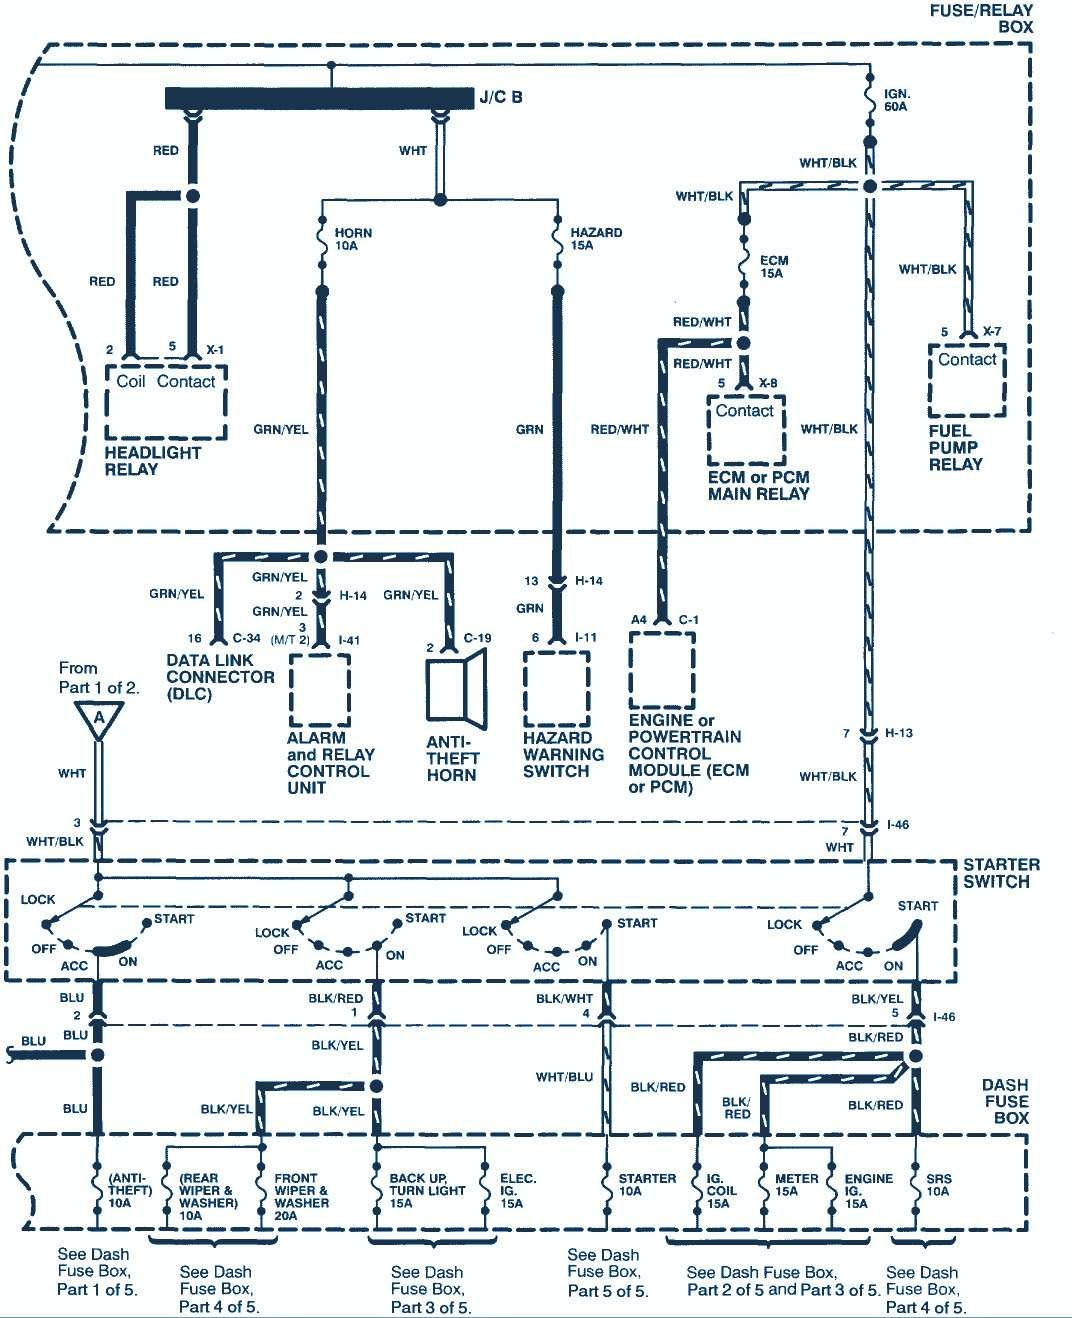 Wiring Diagram Cars Trucks. Wiring Diagram Cars Trucks. Truck Horn Wiring  Wiring Diagrams | Electrical wiring diagram, Diagram, Home electrical wiringPinterest